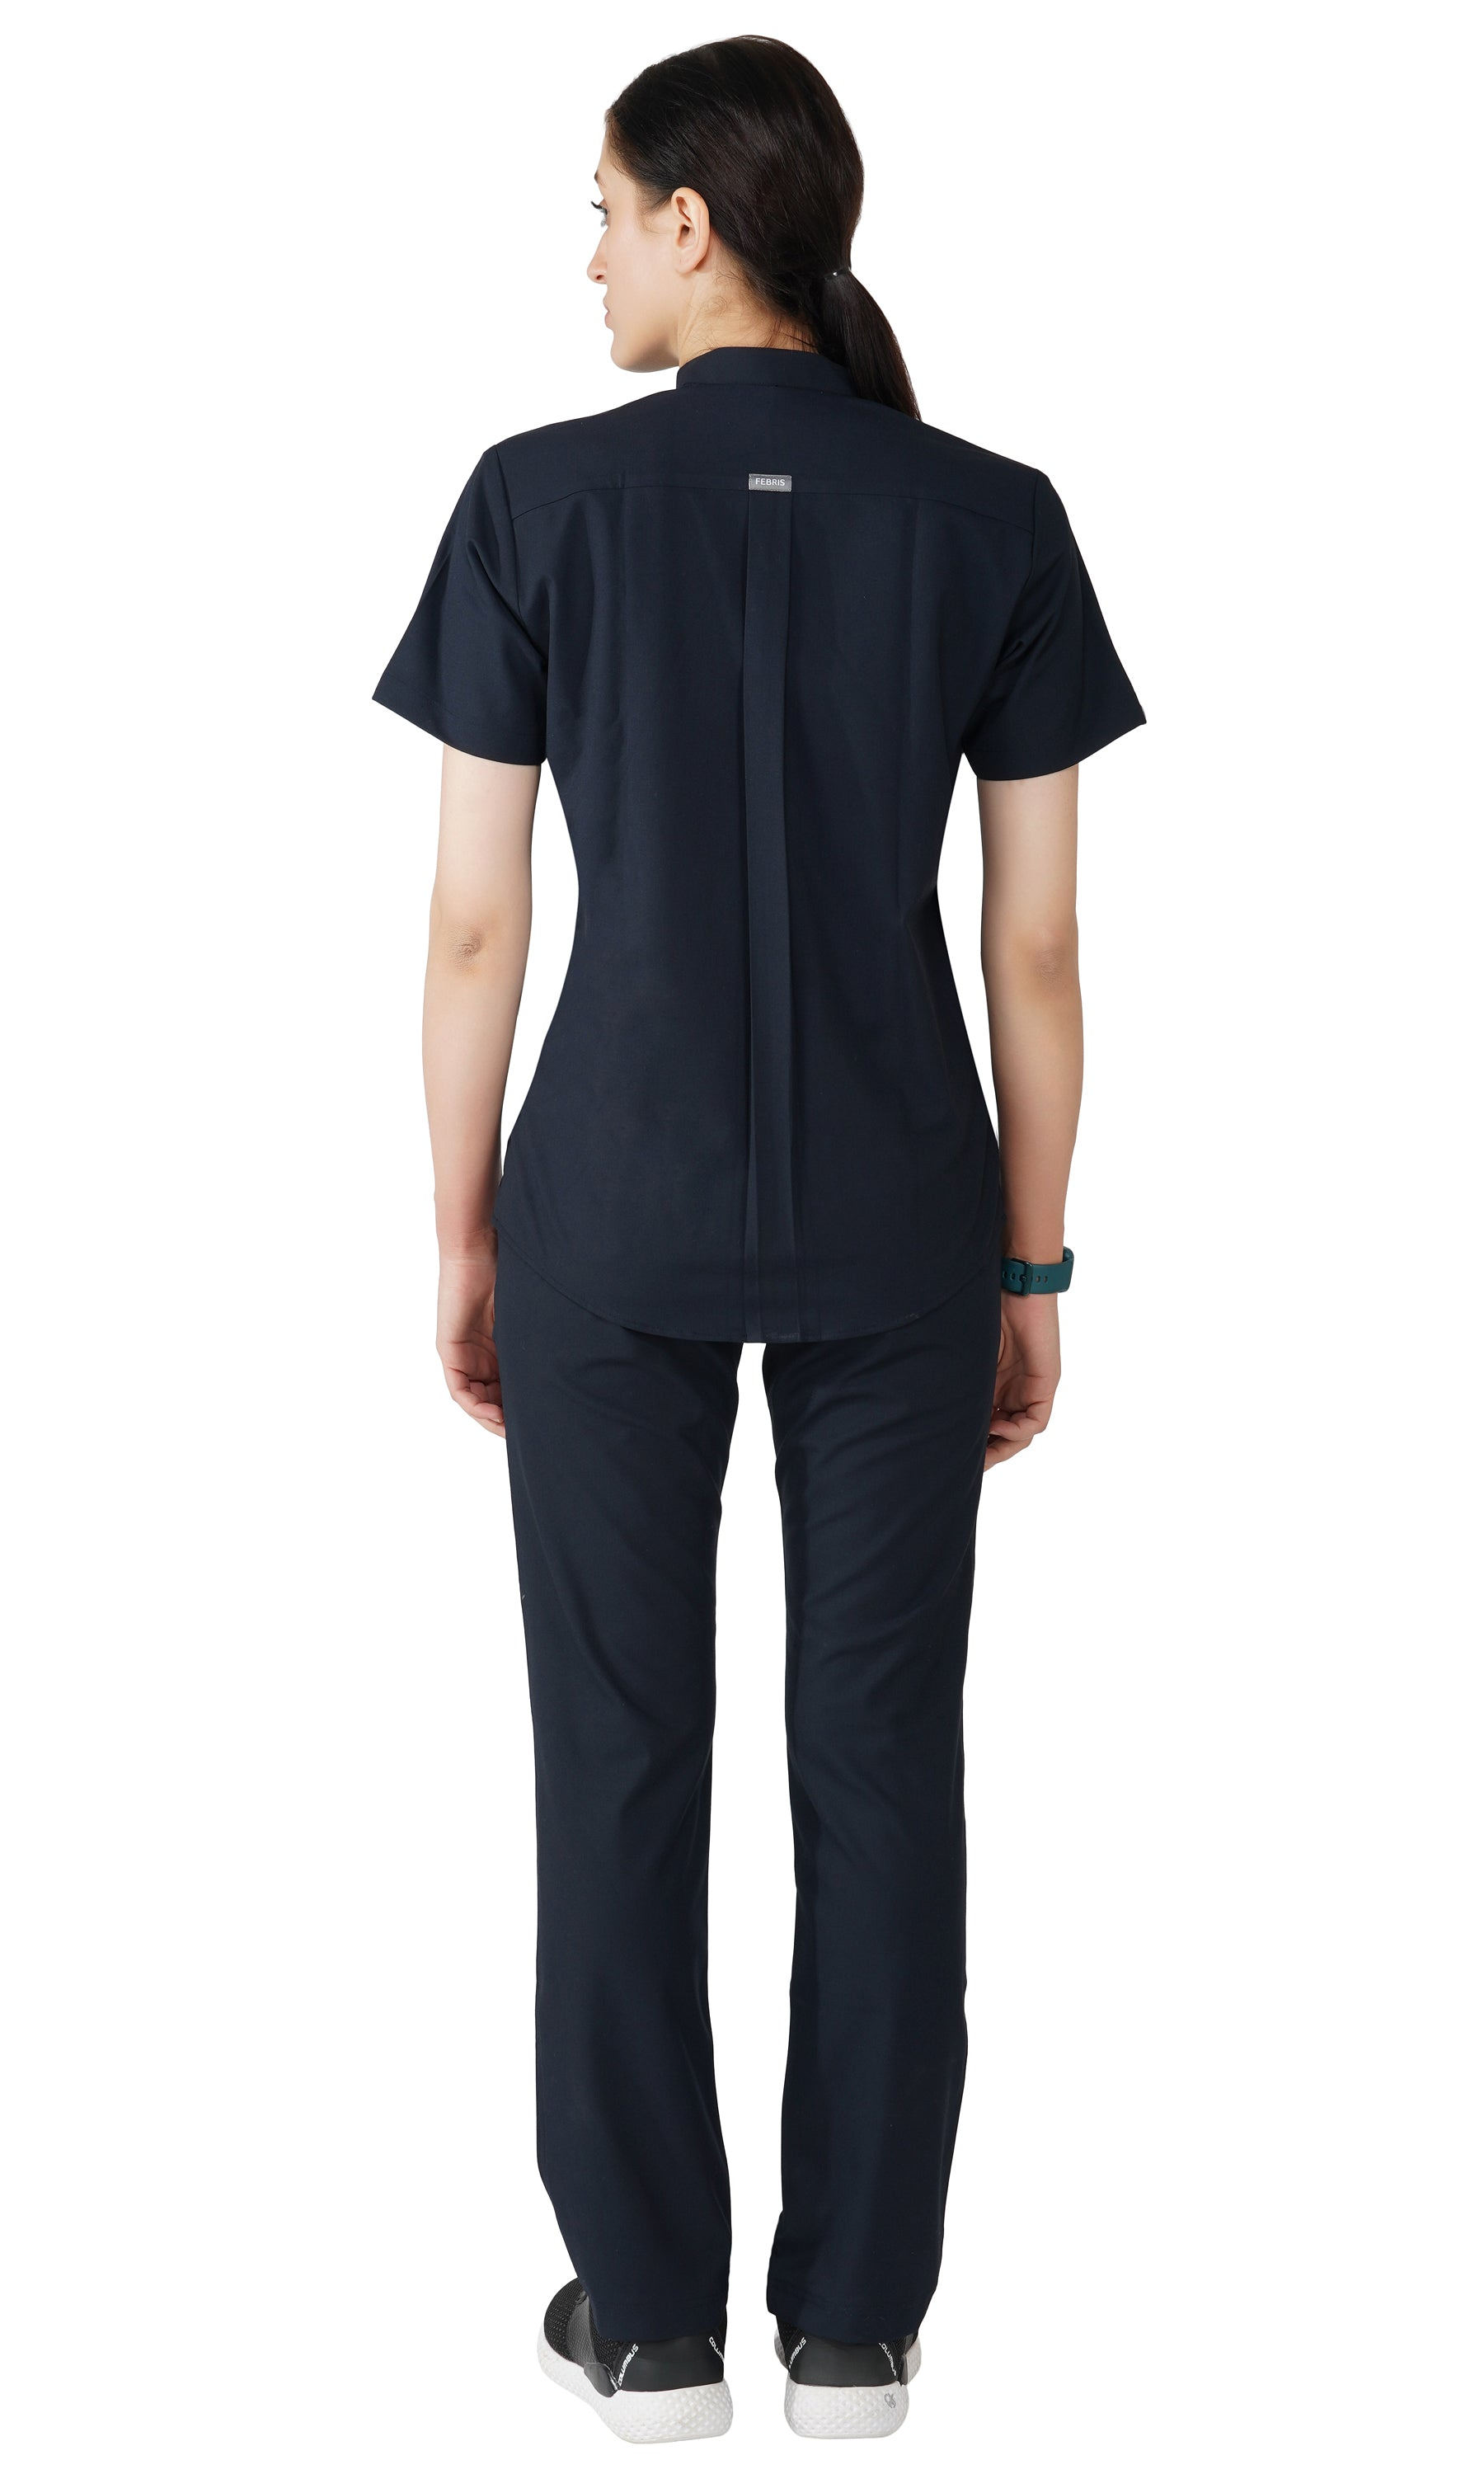 MYDRAL Scrub Top